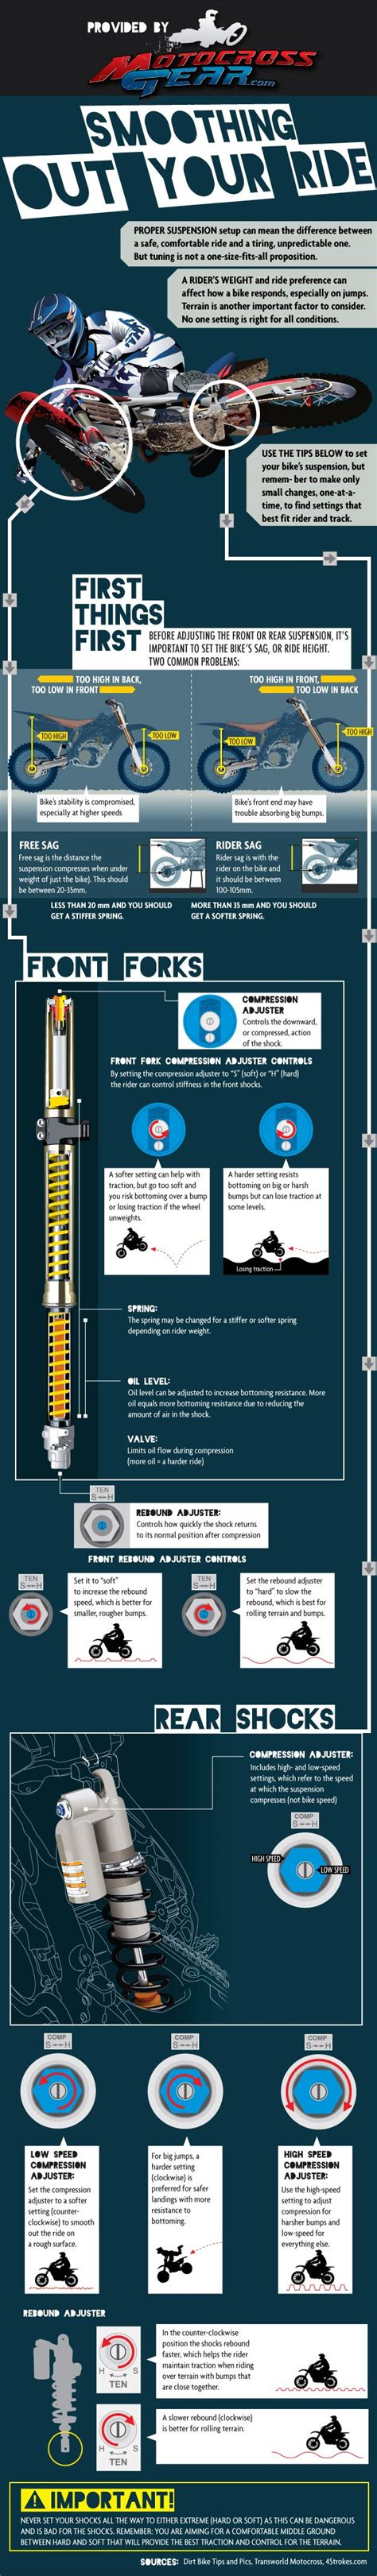 suspension tuning chart suspension setup guide motorcycle infographics